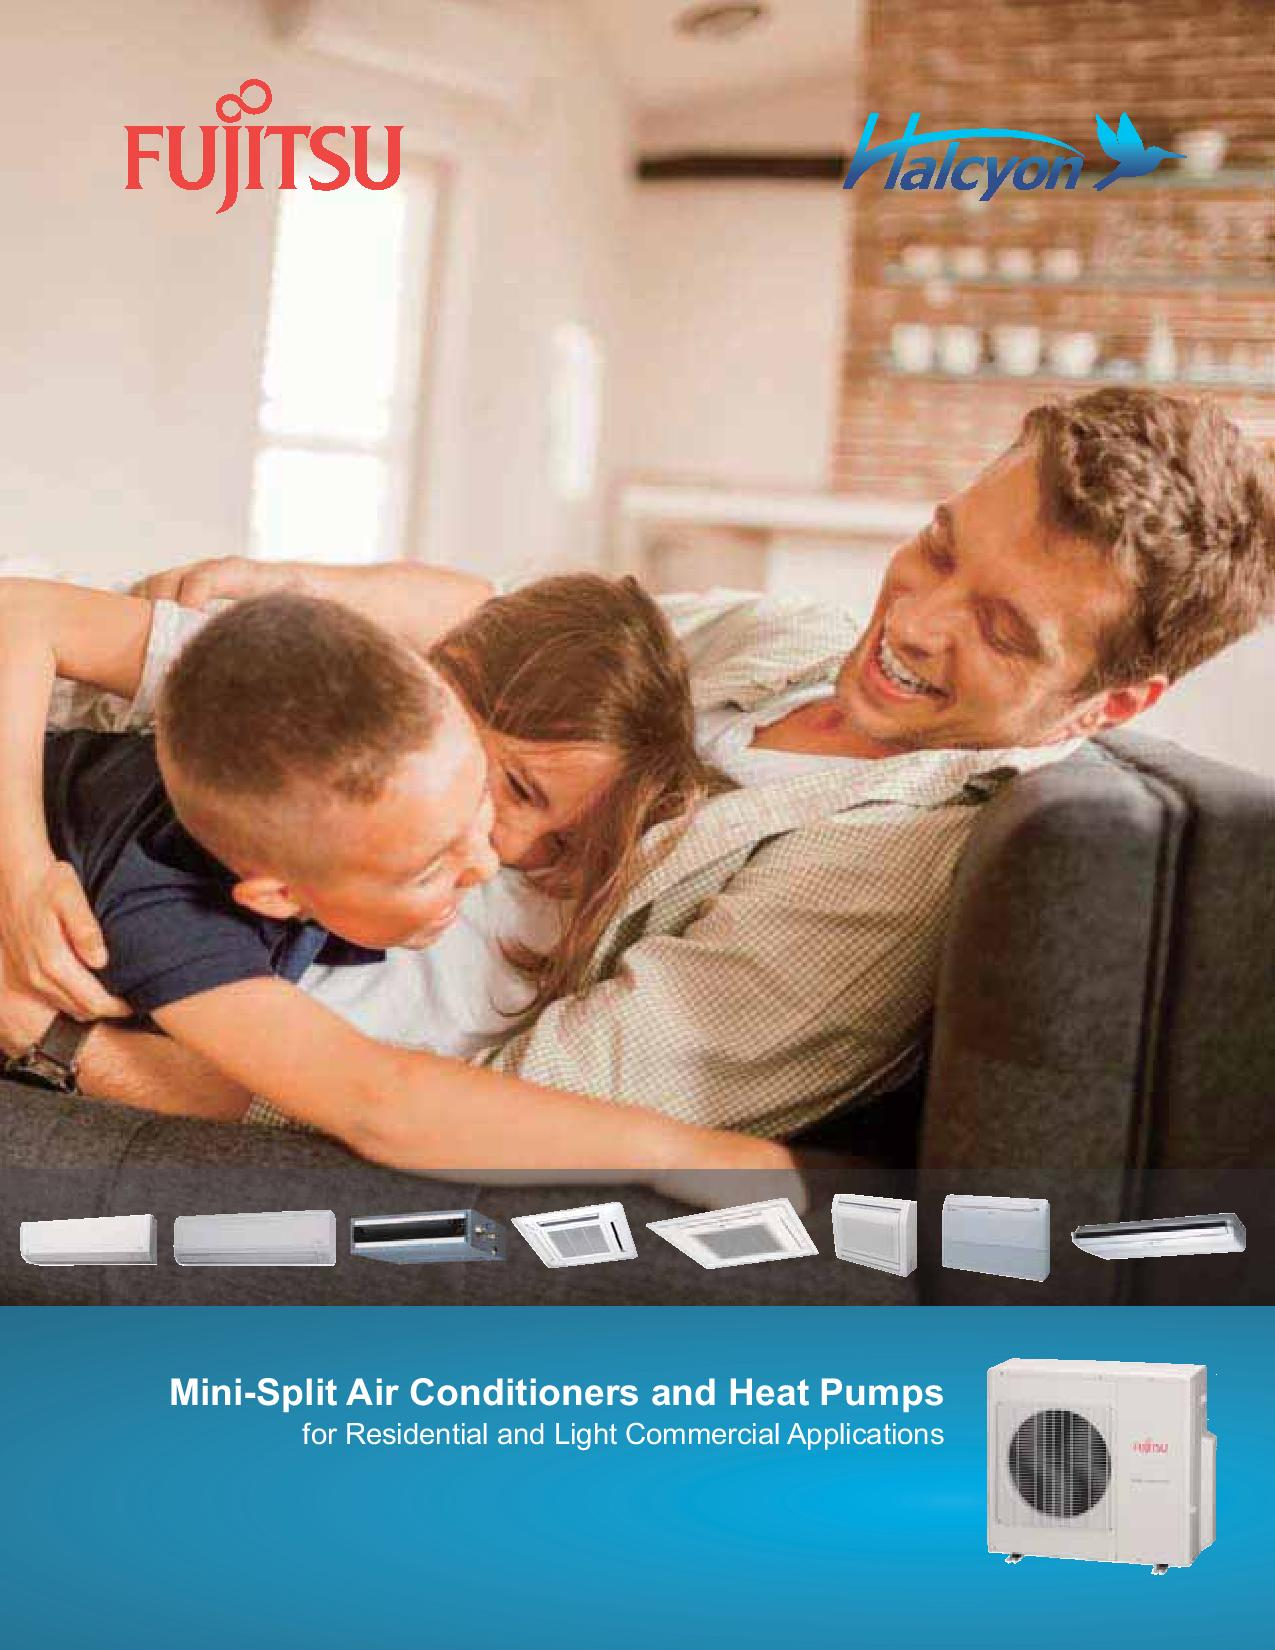 See what makes (Mftr.) Fujitsu your number one choice for Furnace repair in Eden Prairie MN.